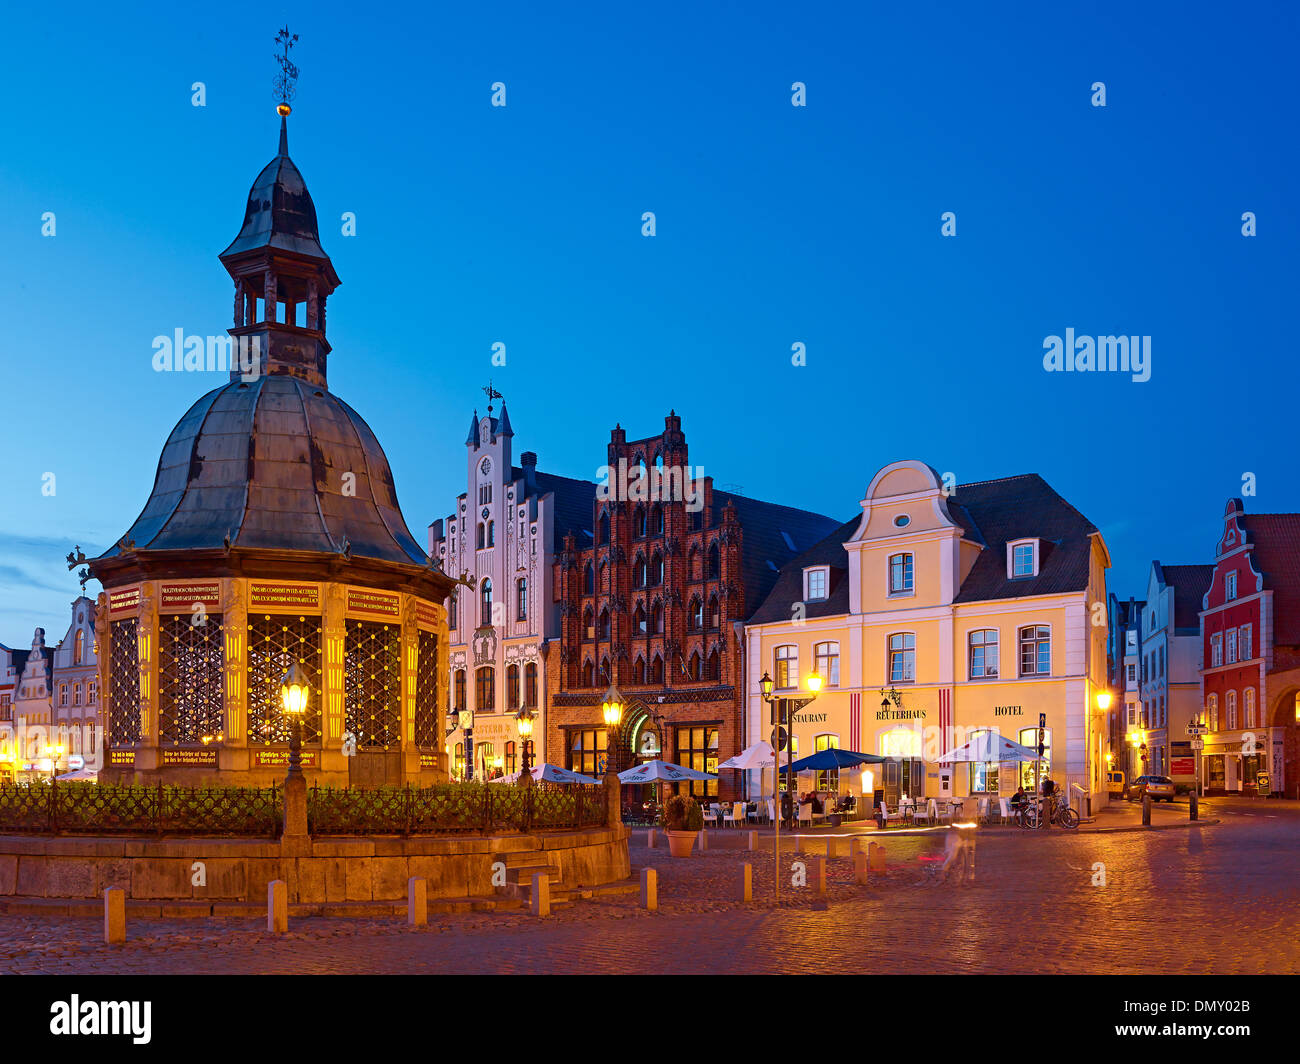 Waterworks with Alter Schwede restaurant and Reuter house on the market Hanseatic city of Wismar Mecklenburg-Vorpommern Germany - Stock Image